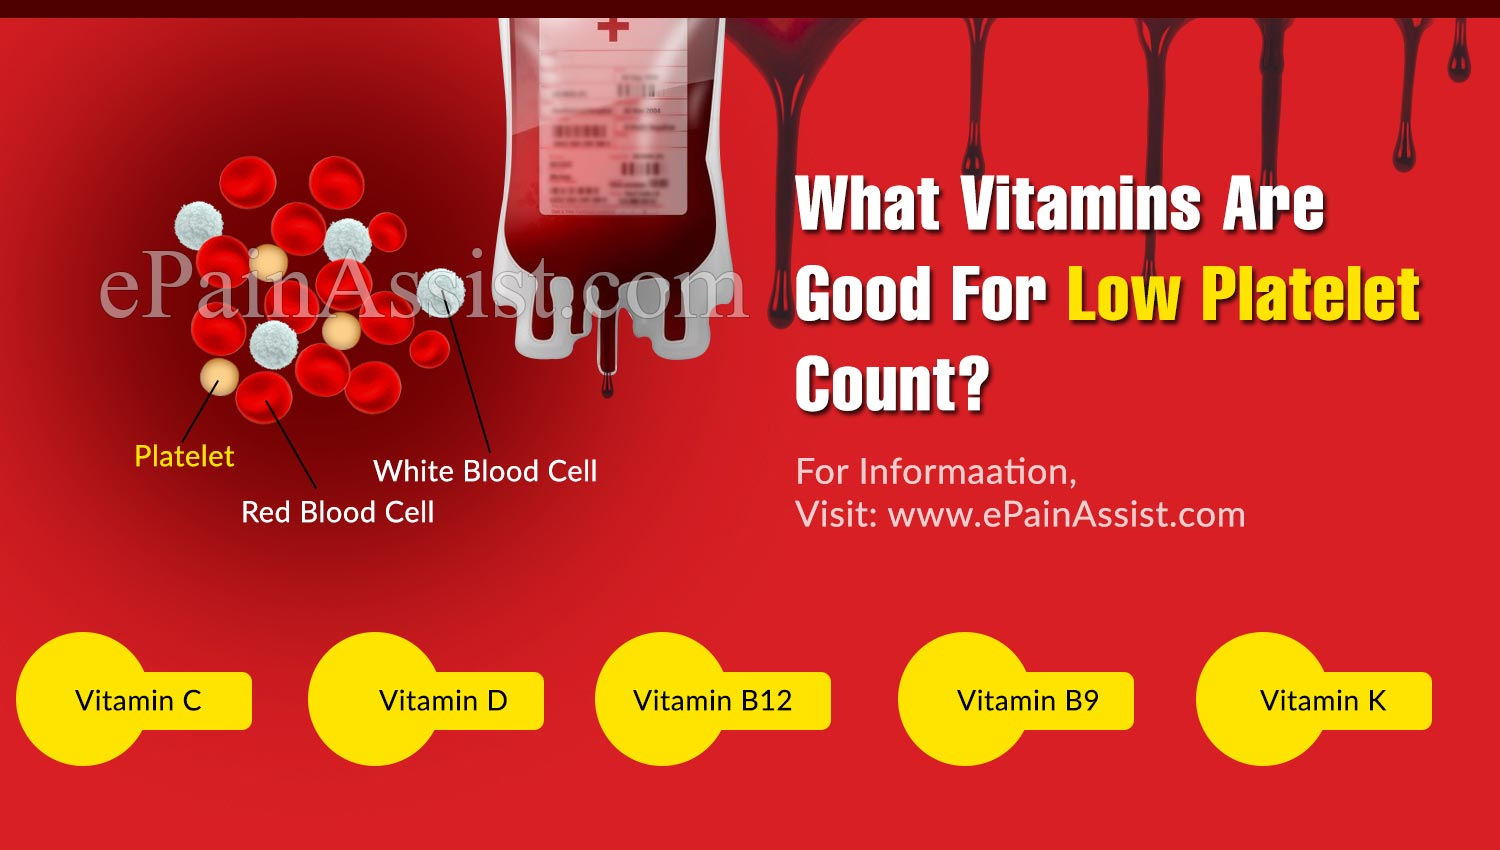 What Vitamins Are Good For Low Platelet Count?